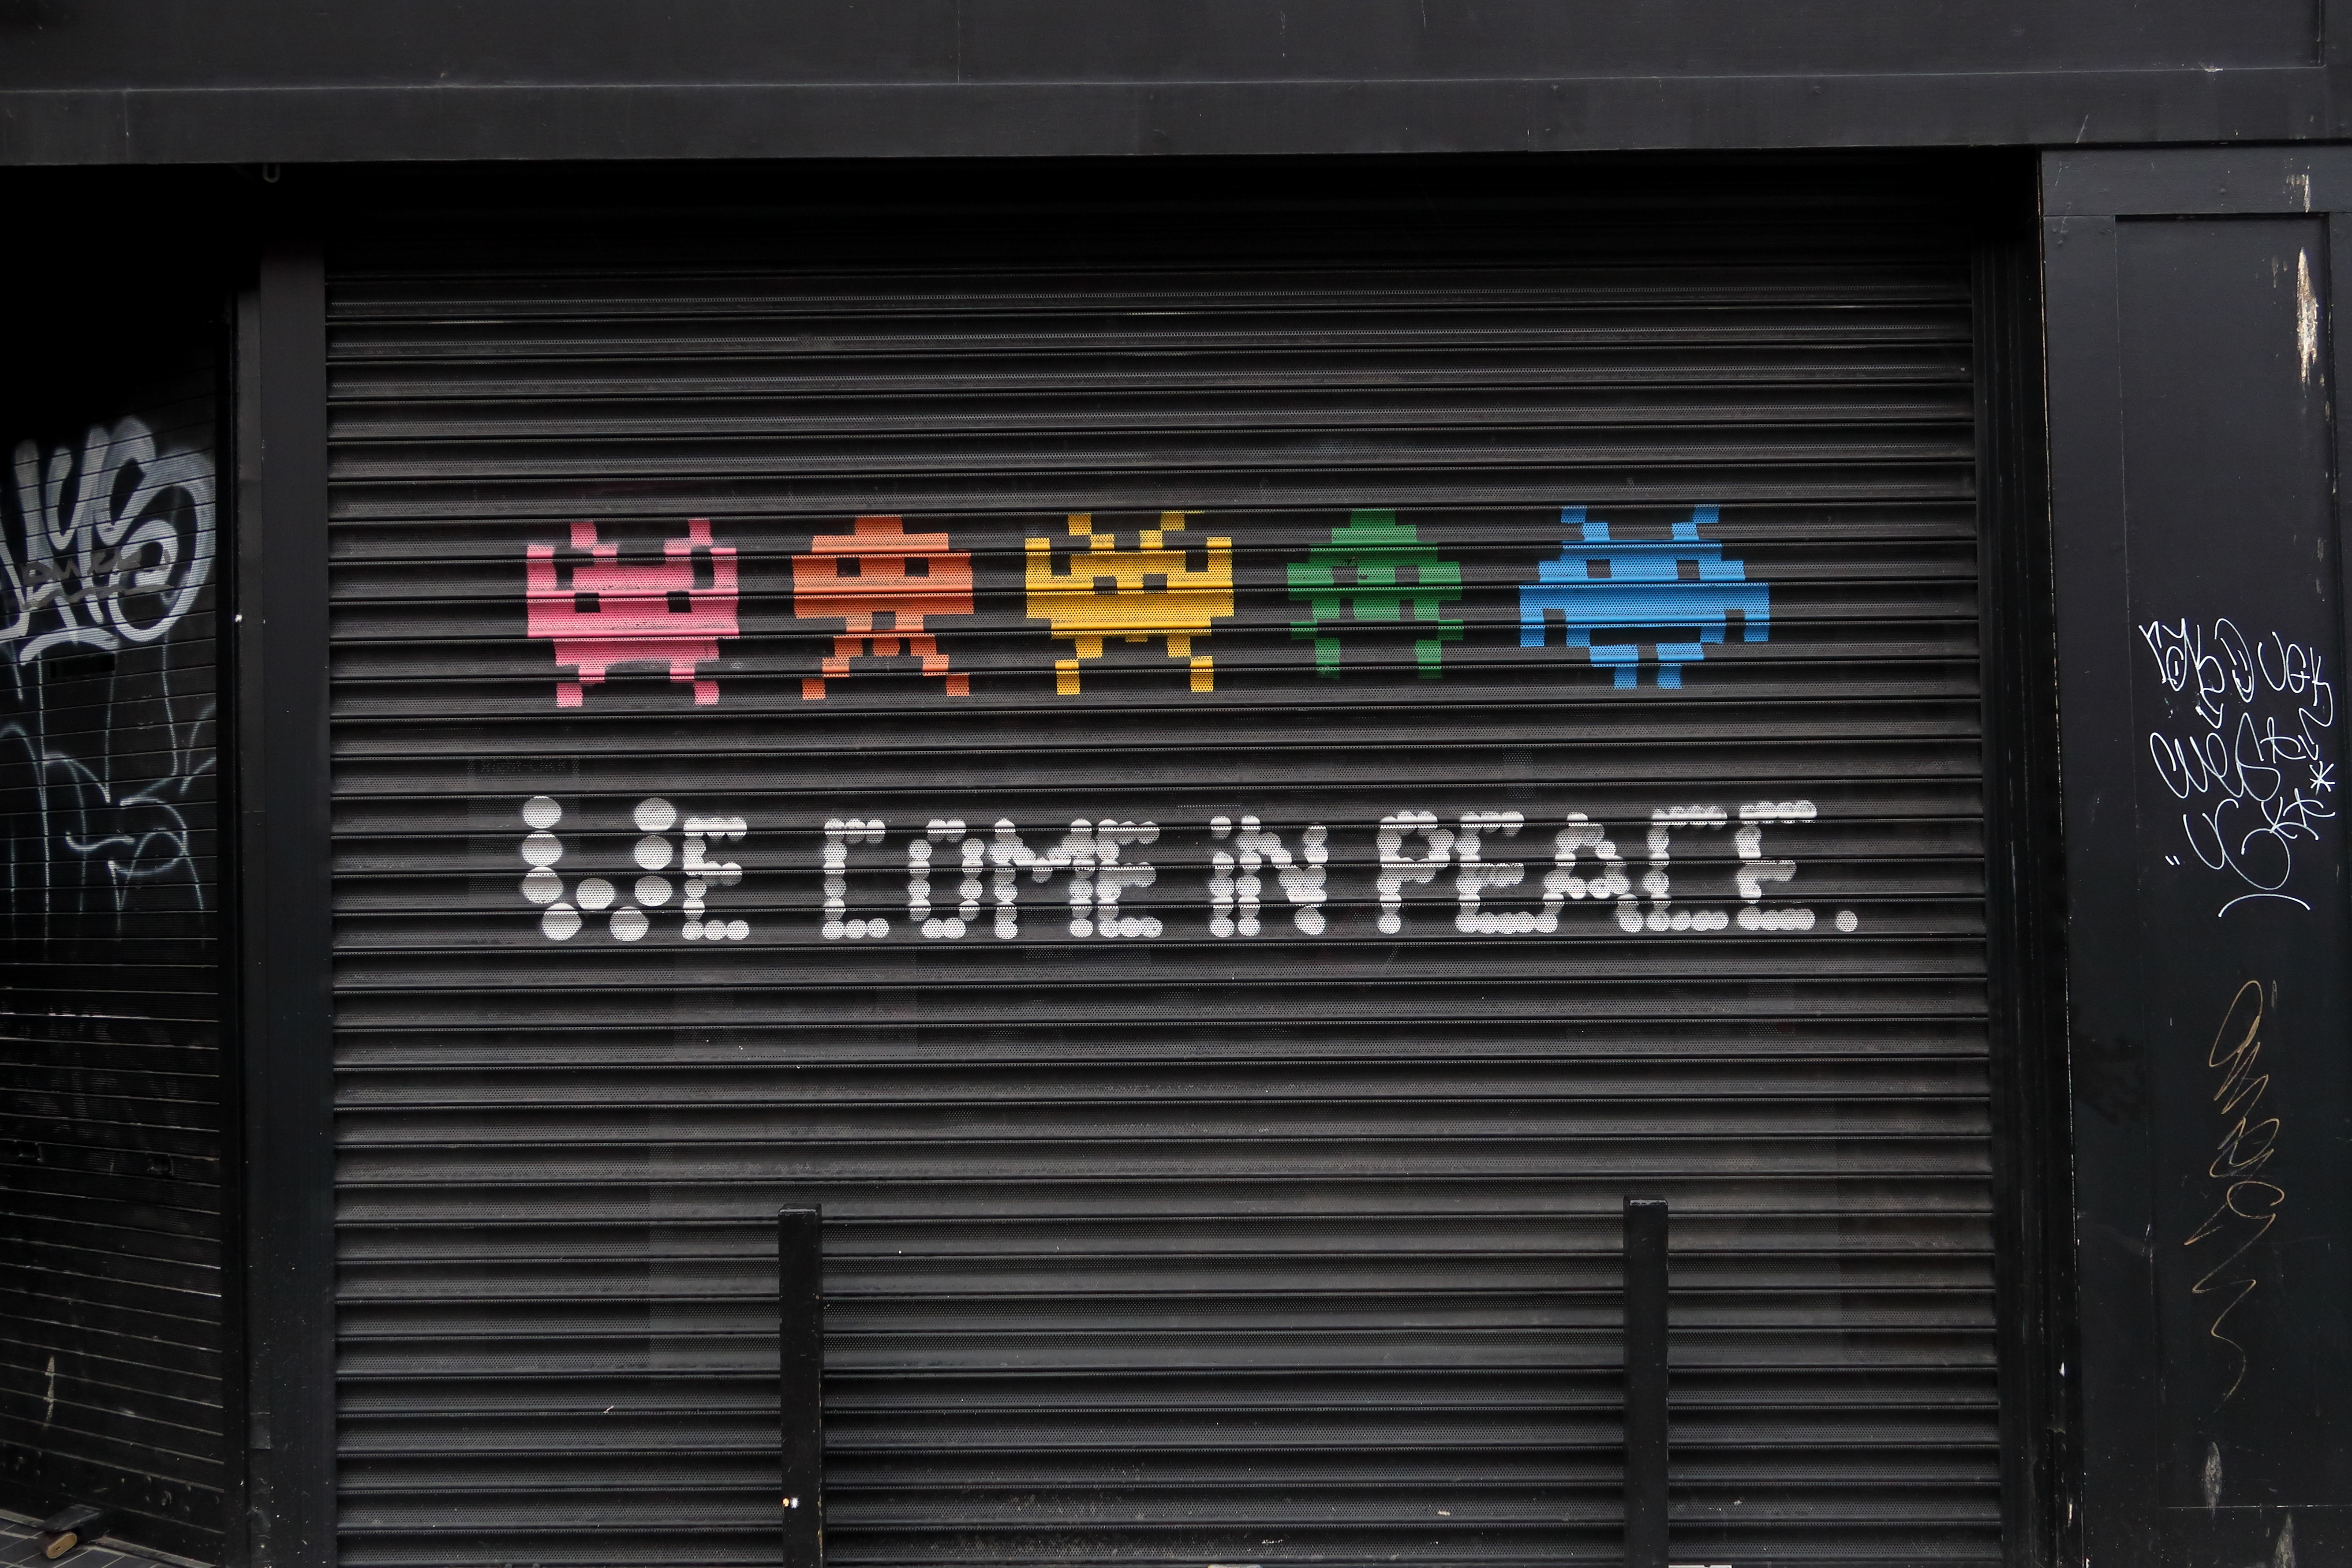 41 Dublin Street Art - We Come In Peace.